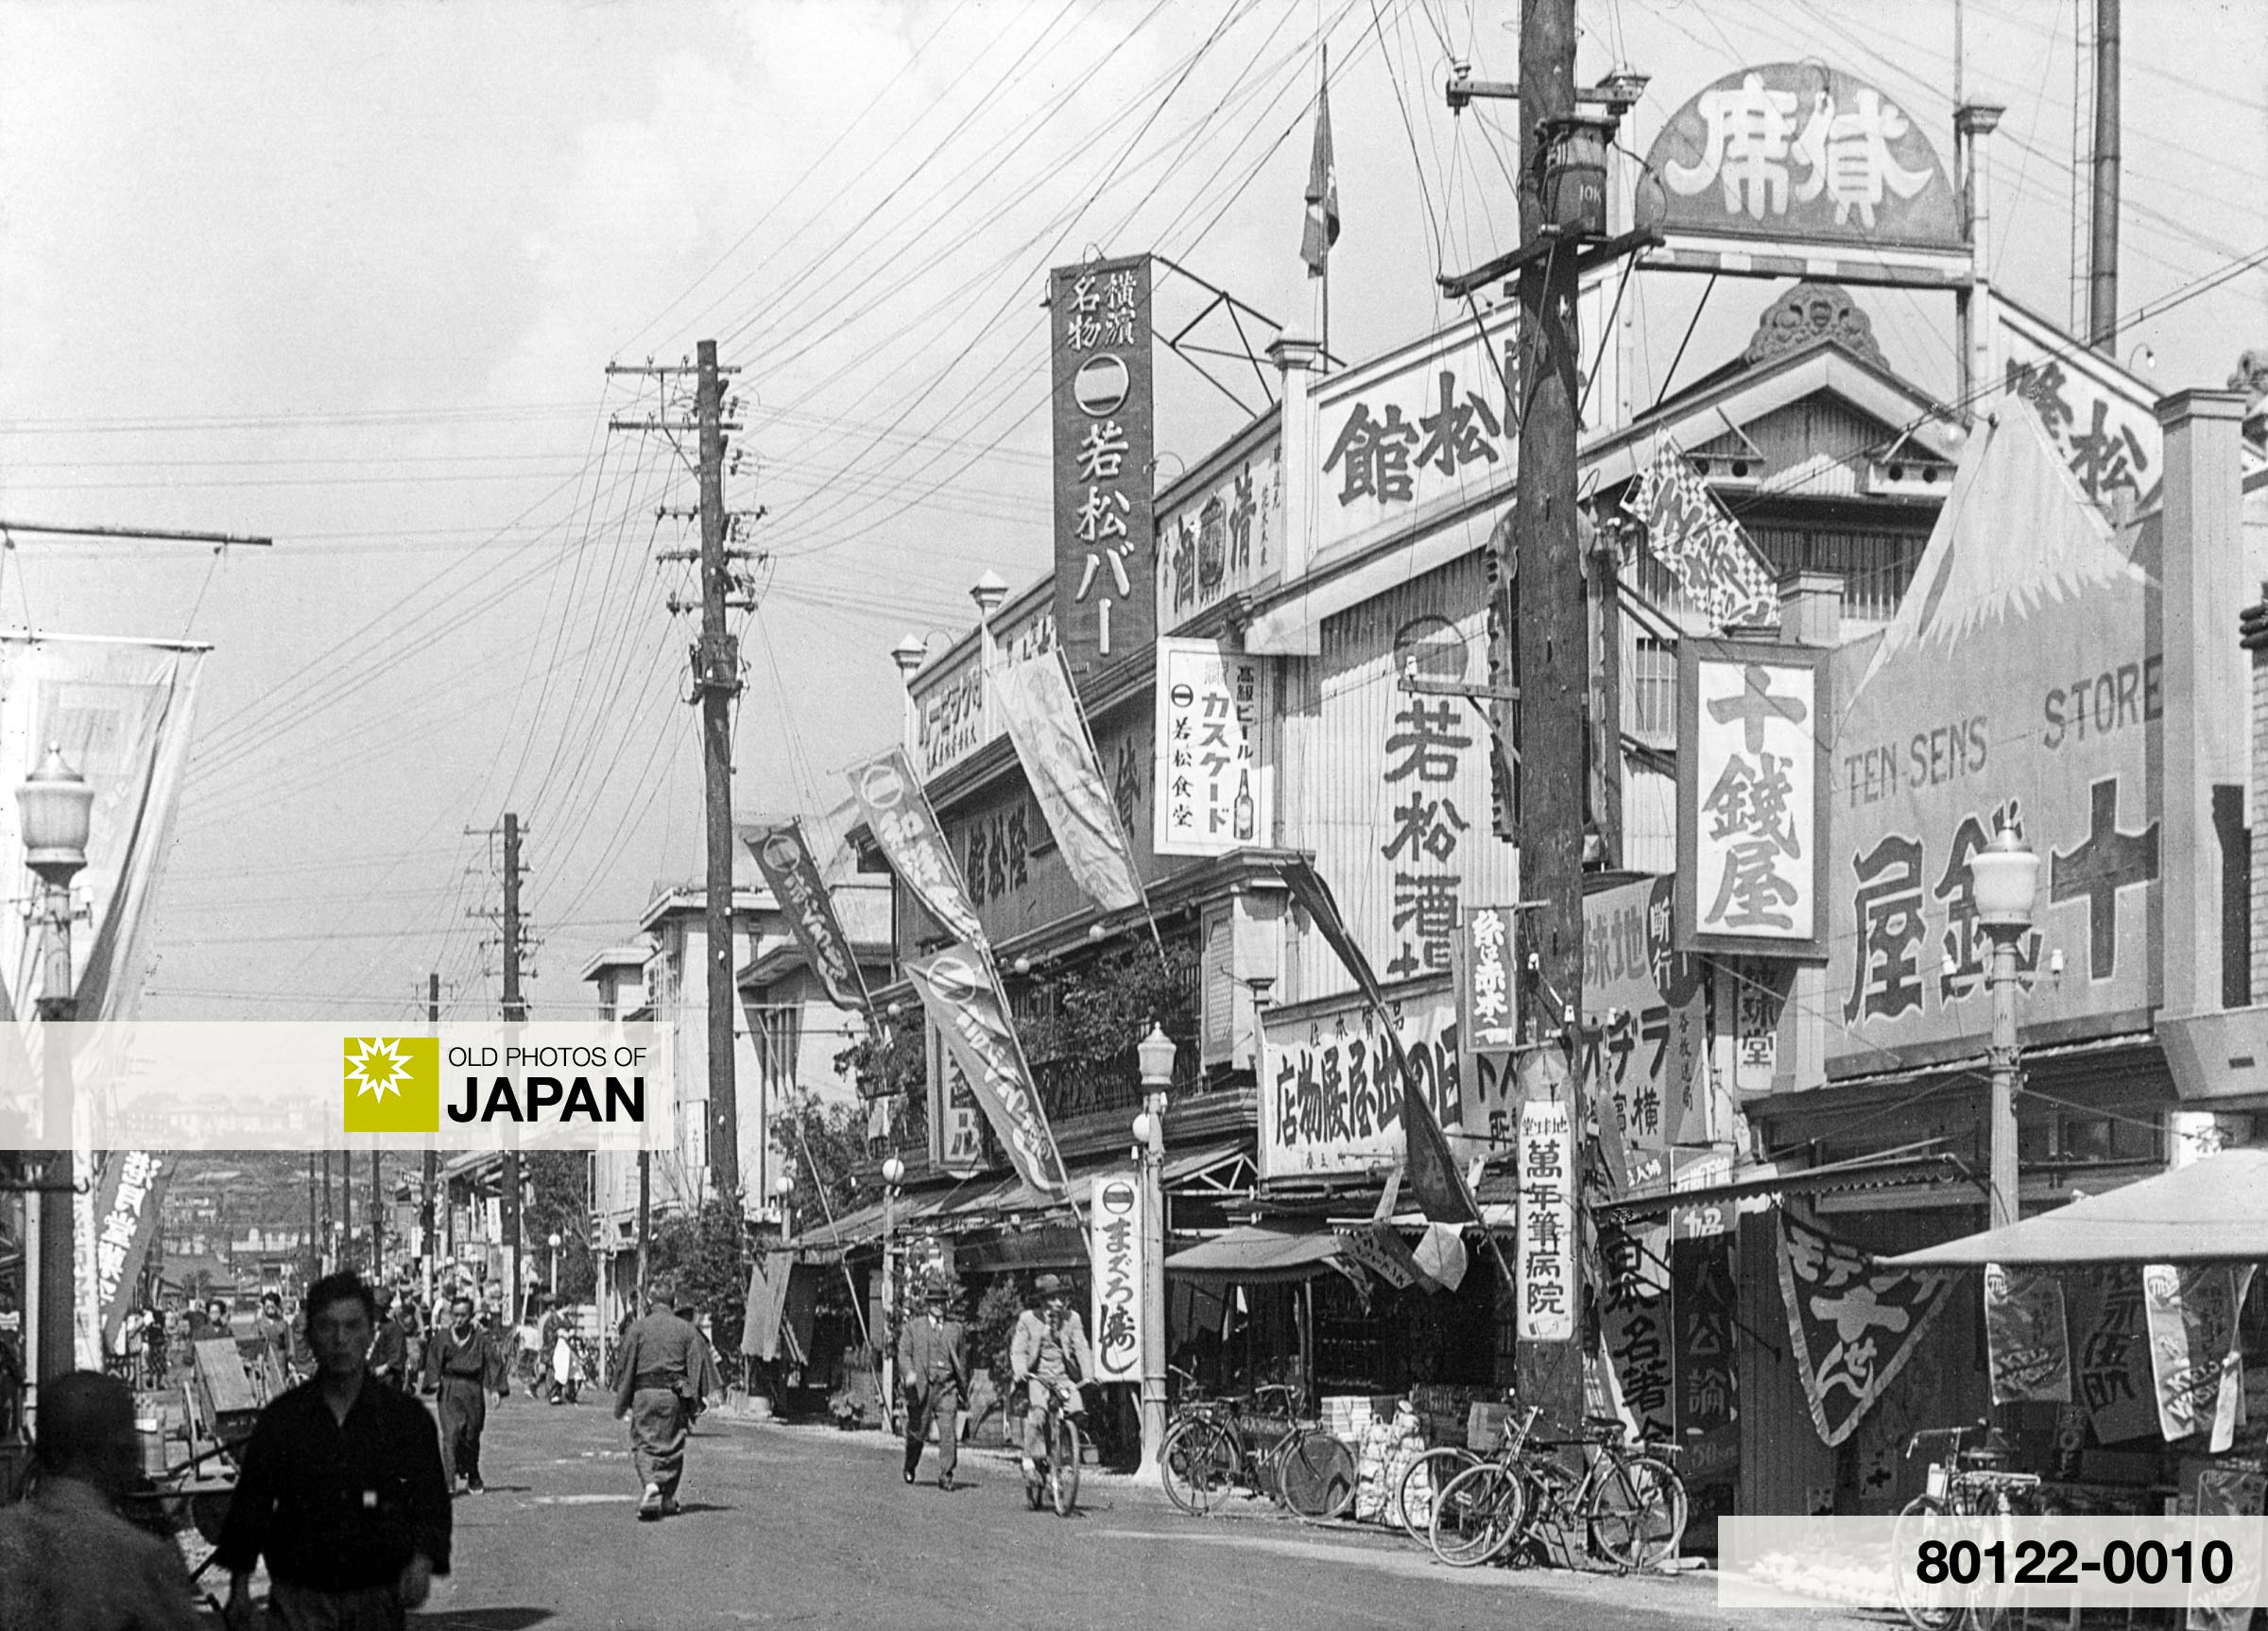 Benten-dori in Yokohama, Japan (1930).